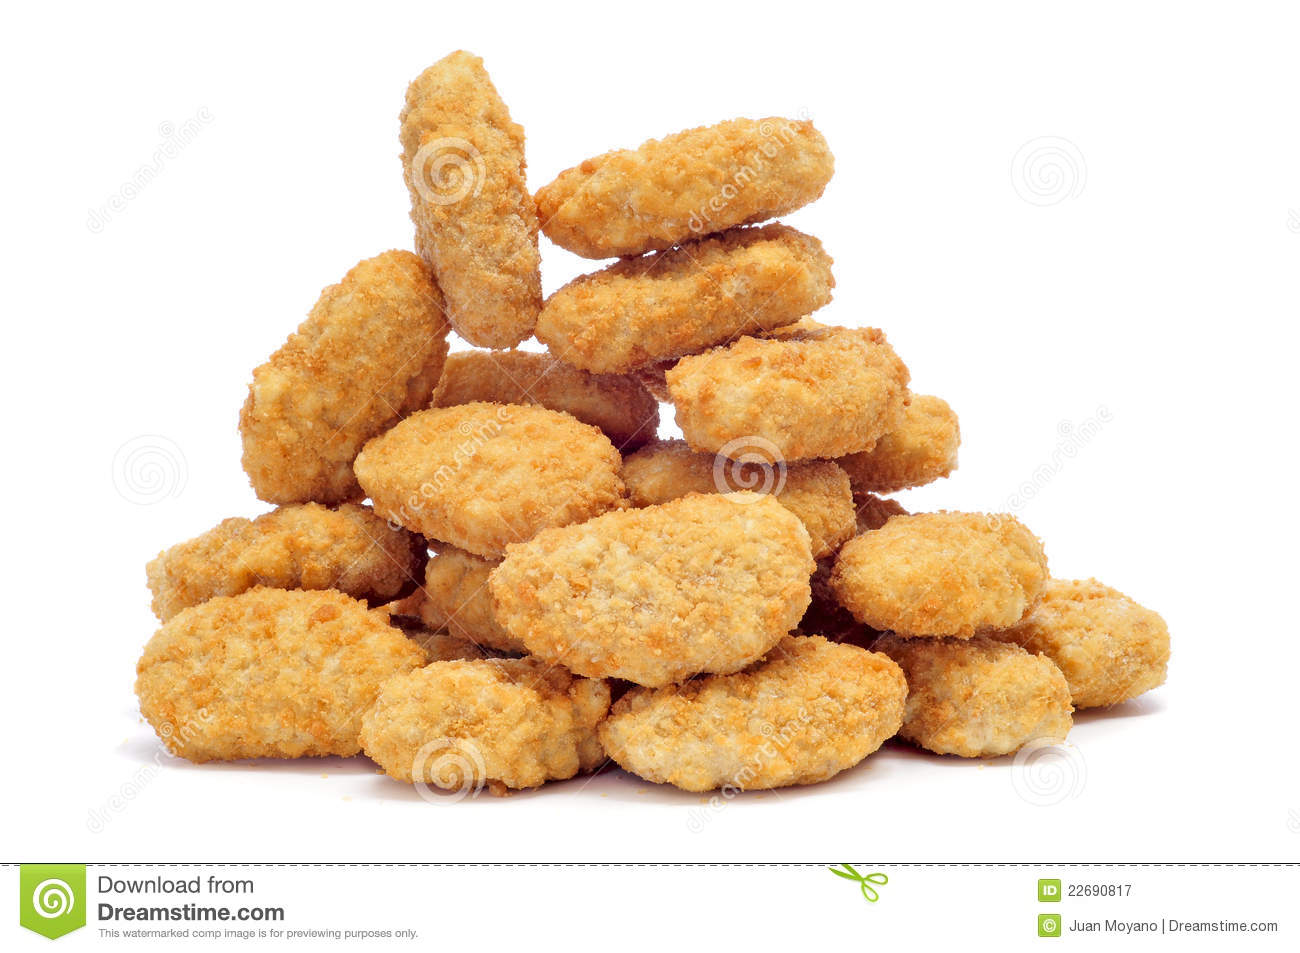 chicken nuggets stock image image of crunchy chicken 22690817 rh dreamstime com chicken nuggets clipart free chicken nuggets clipart free